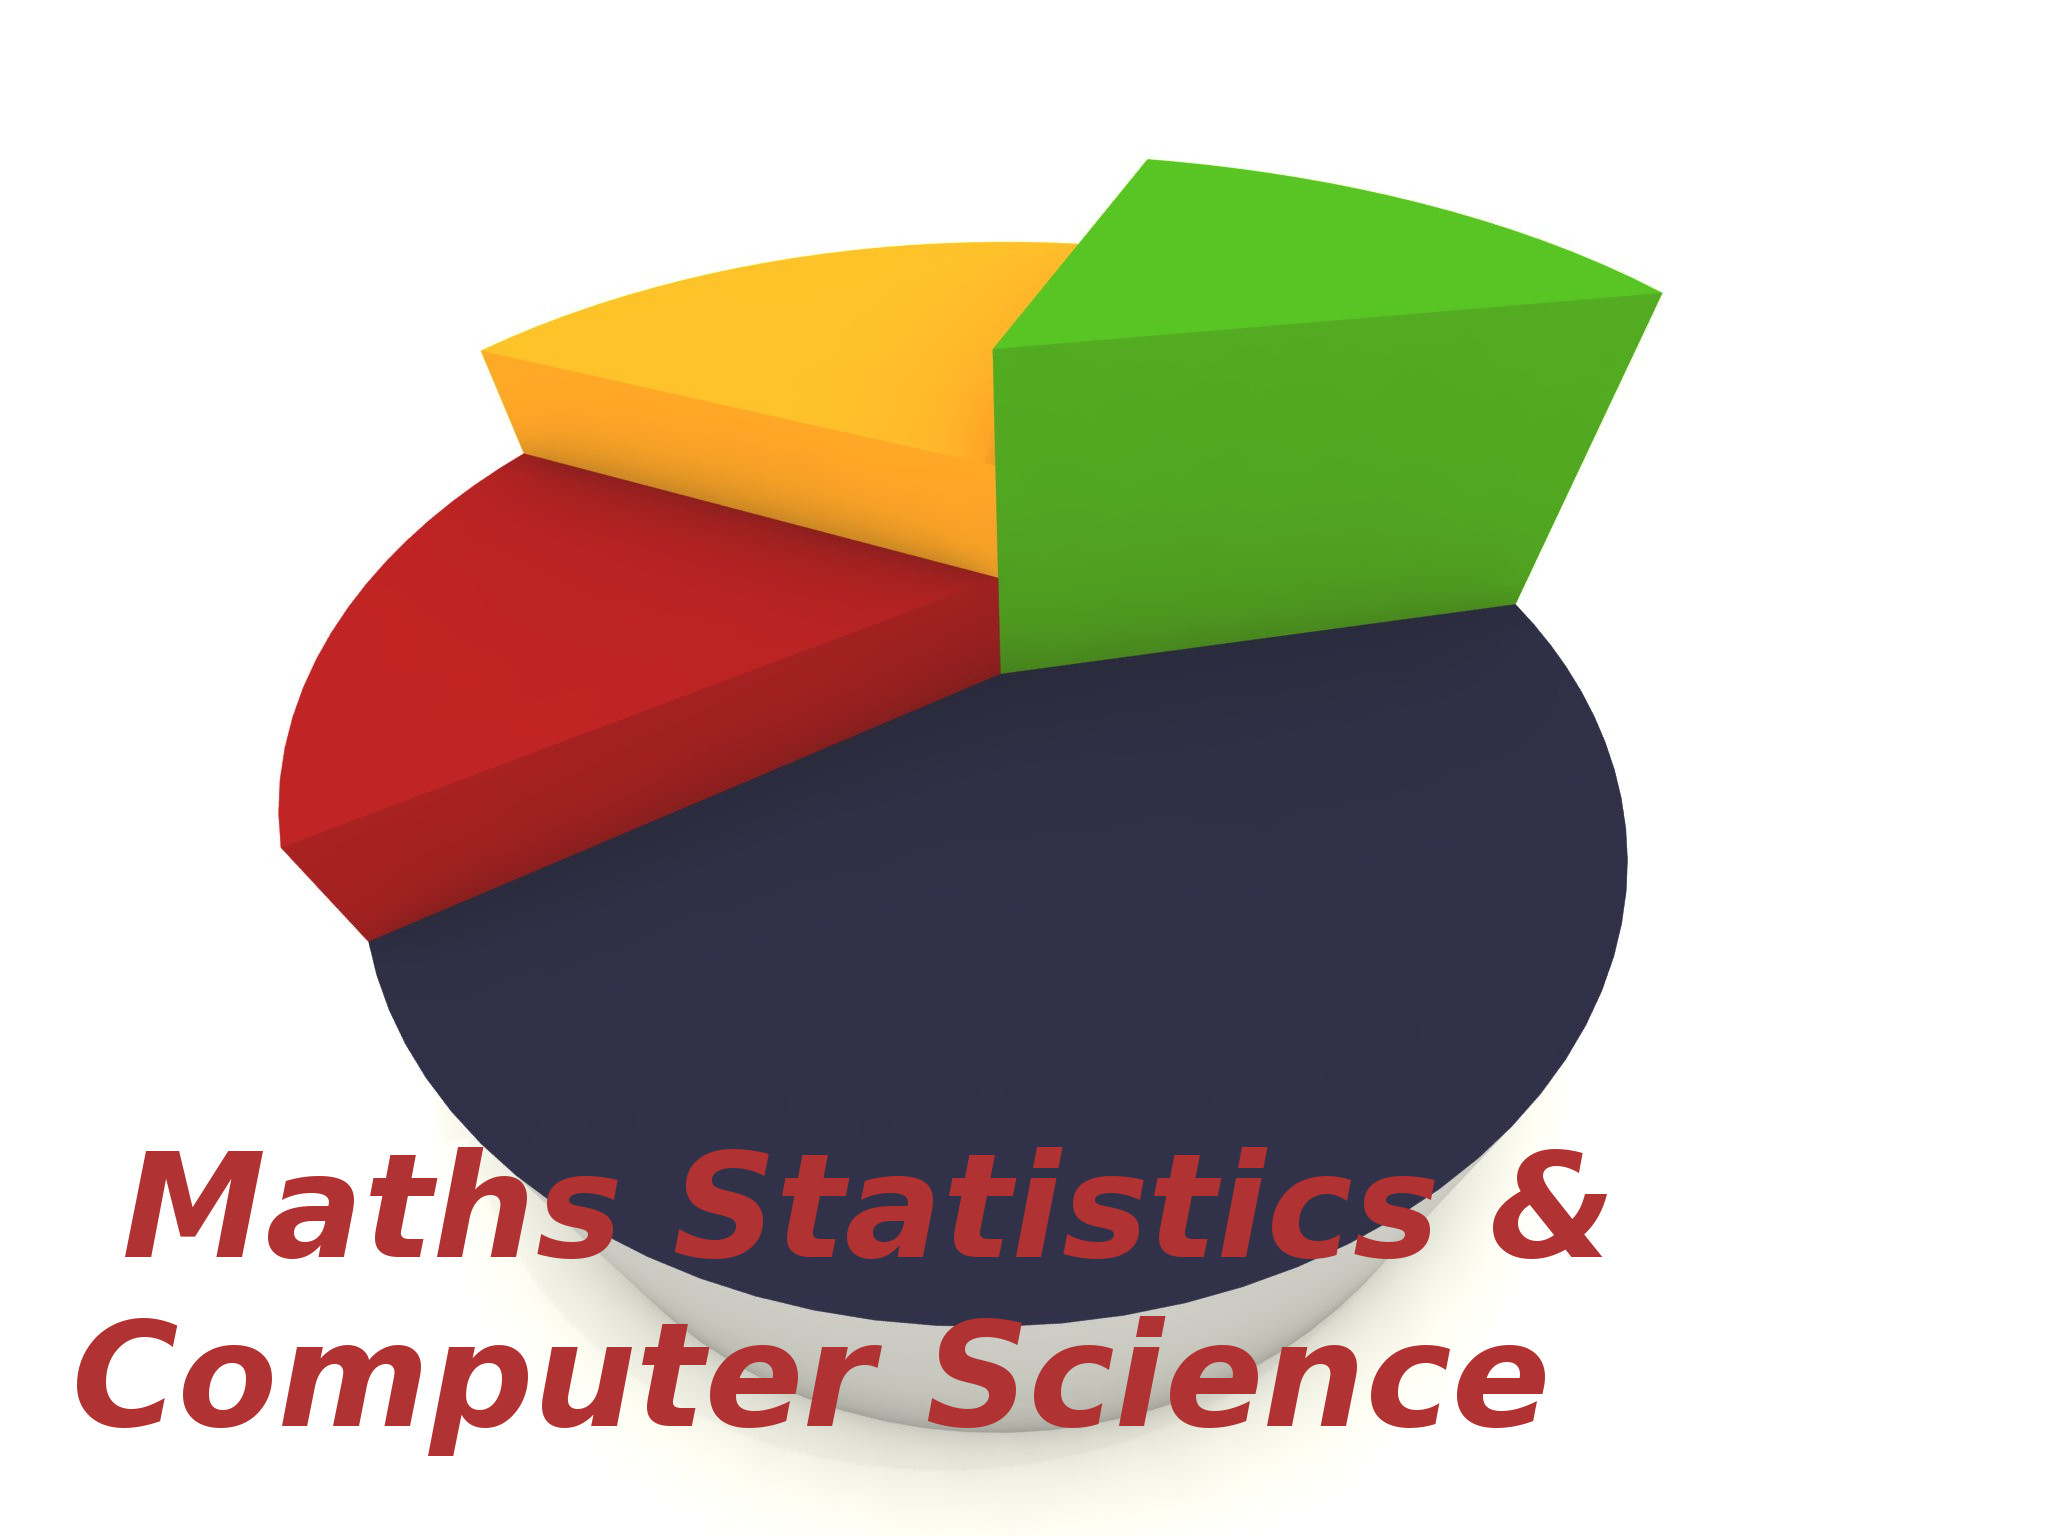 Bachelor of Science (BSc Maths Statistics & Computer Science)